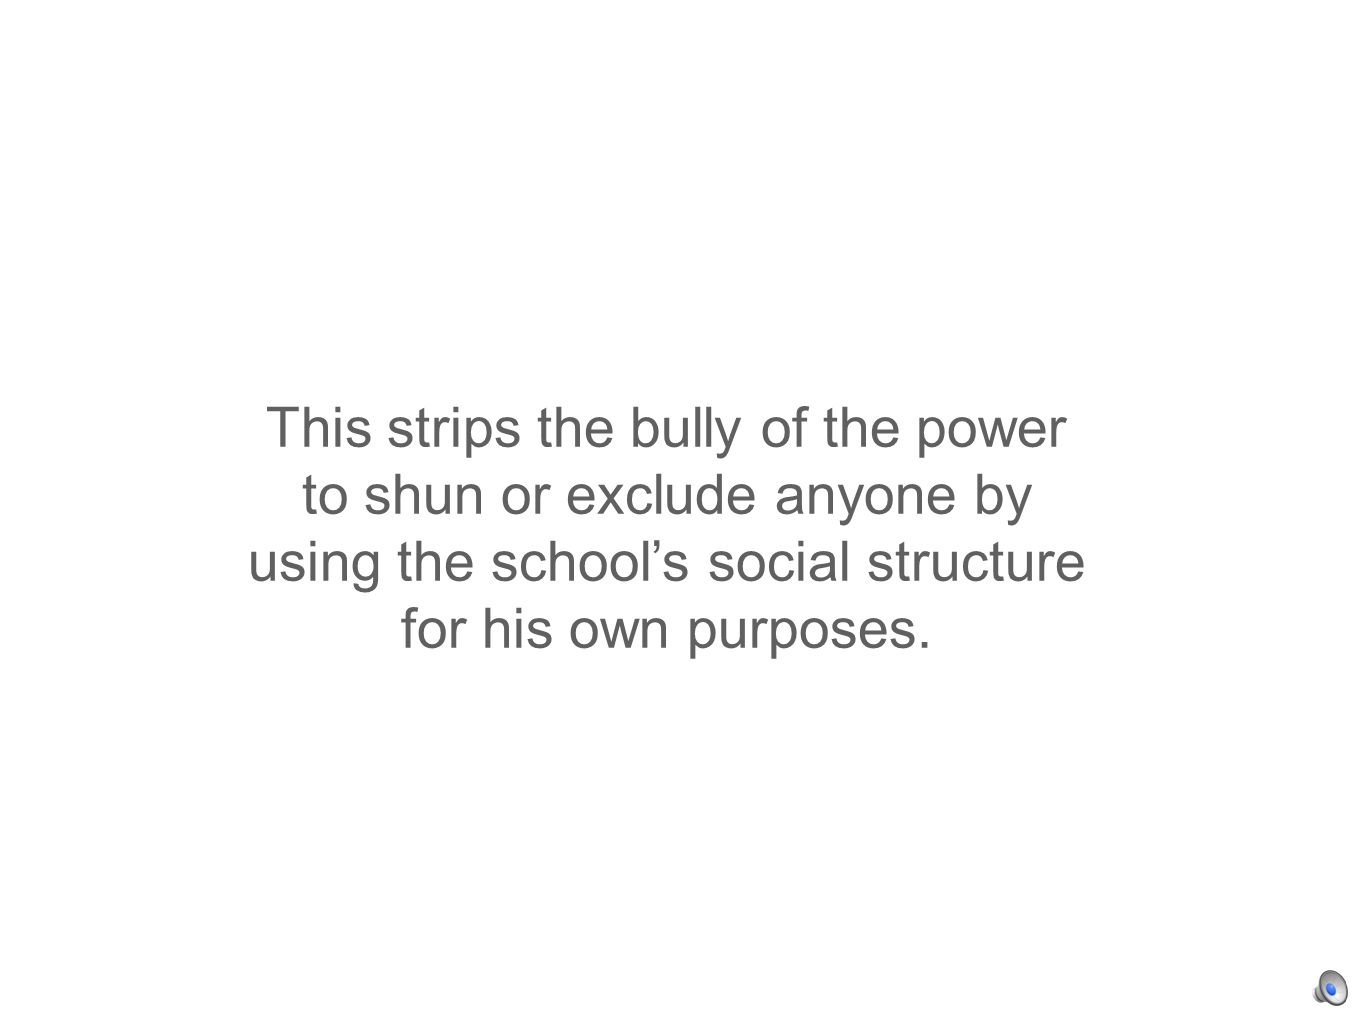 This strips the bully of the power to shun or exclude anyone by using the schools social structure for his own purposes.